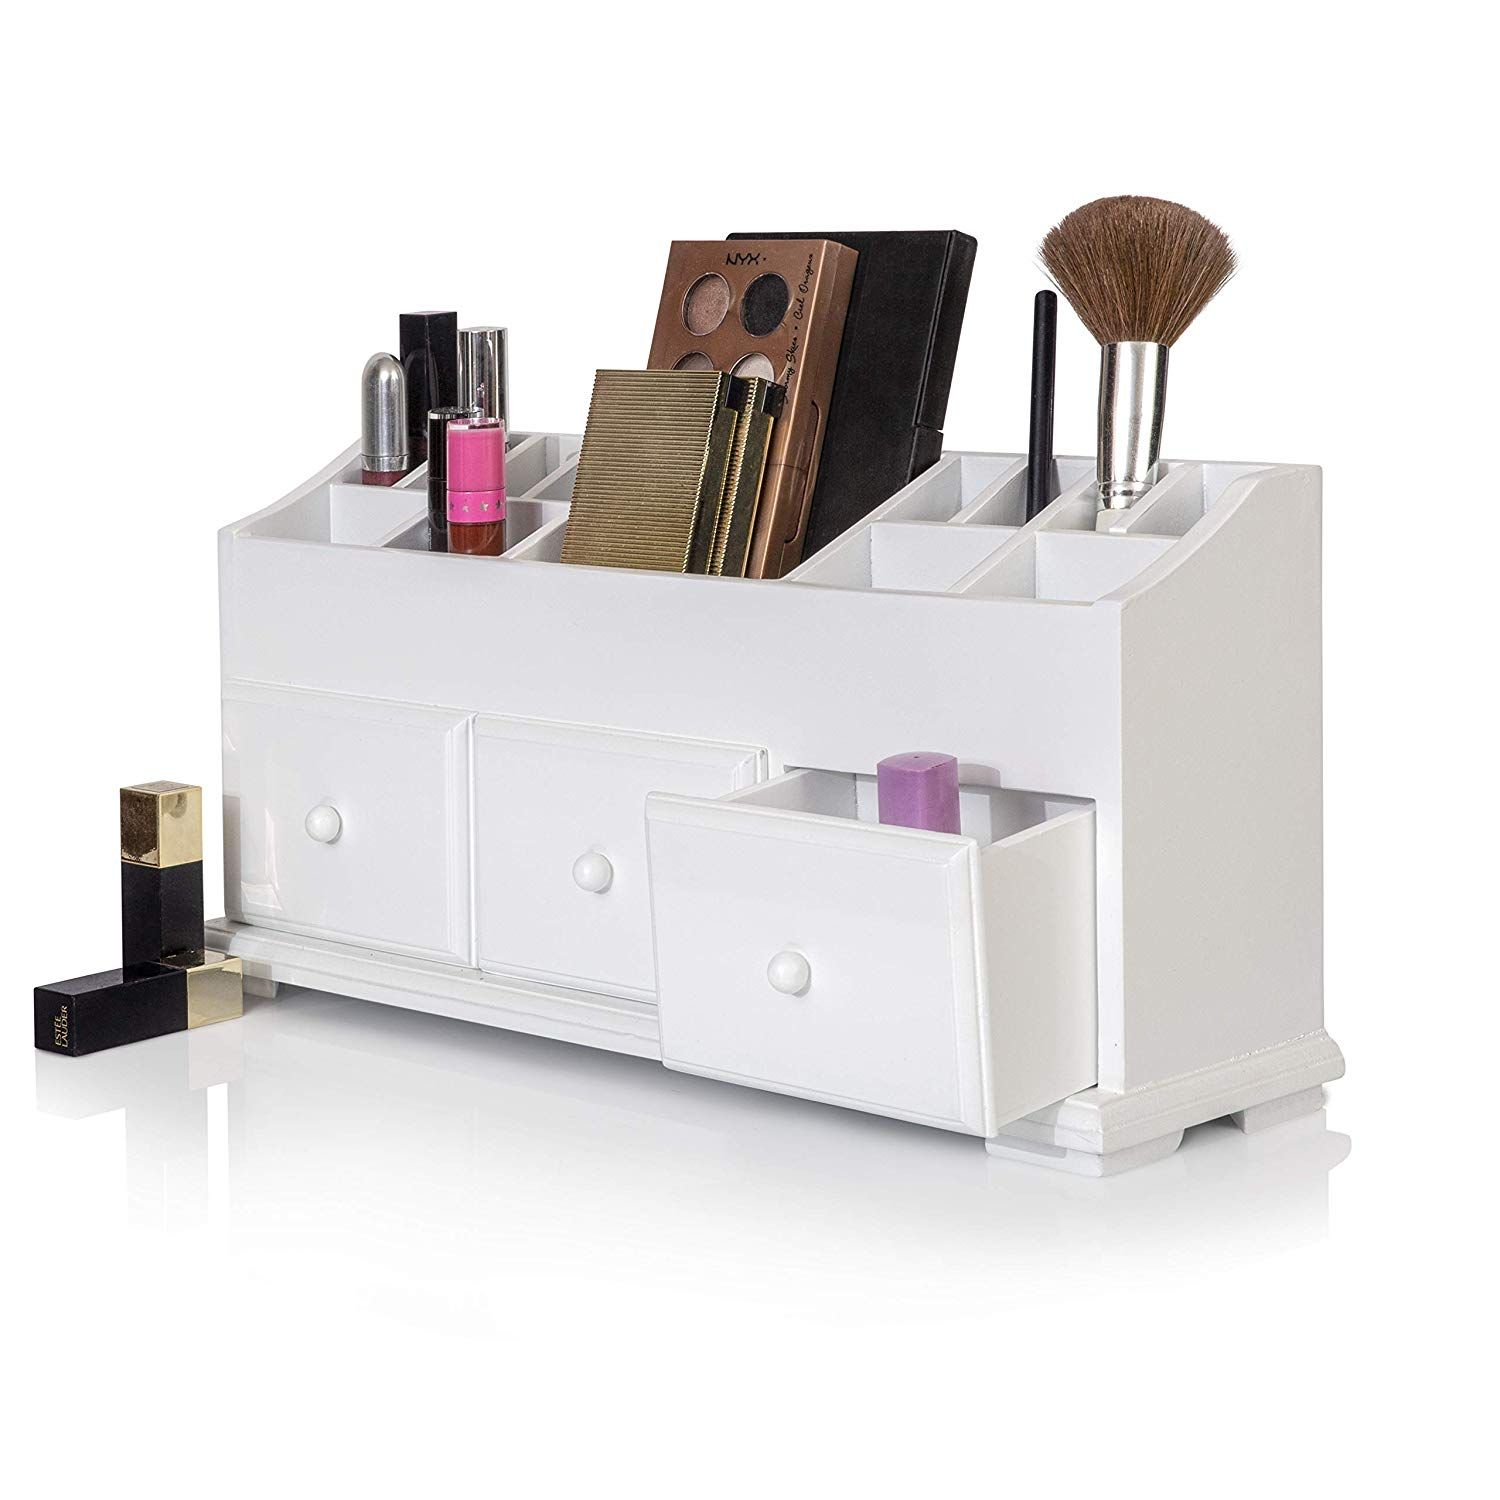 Vanity Drawer Beauty Organizer 3 Drawers - Wooden Cosmetic ...